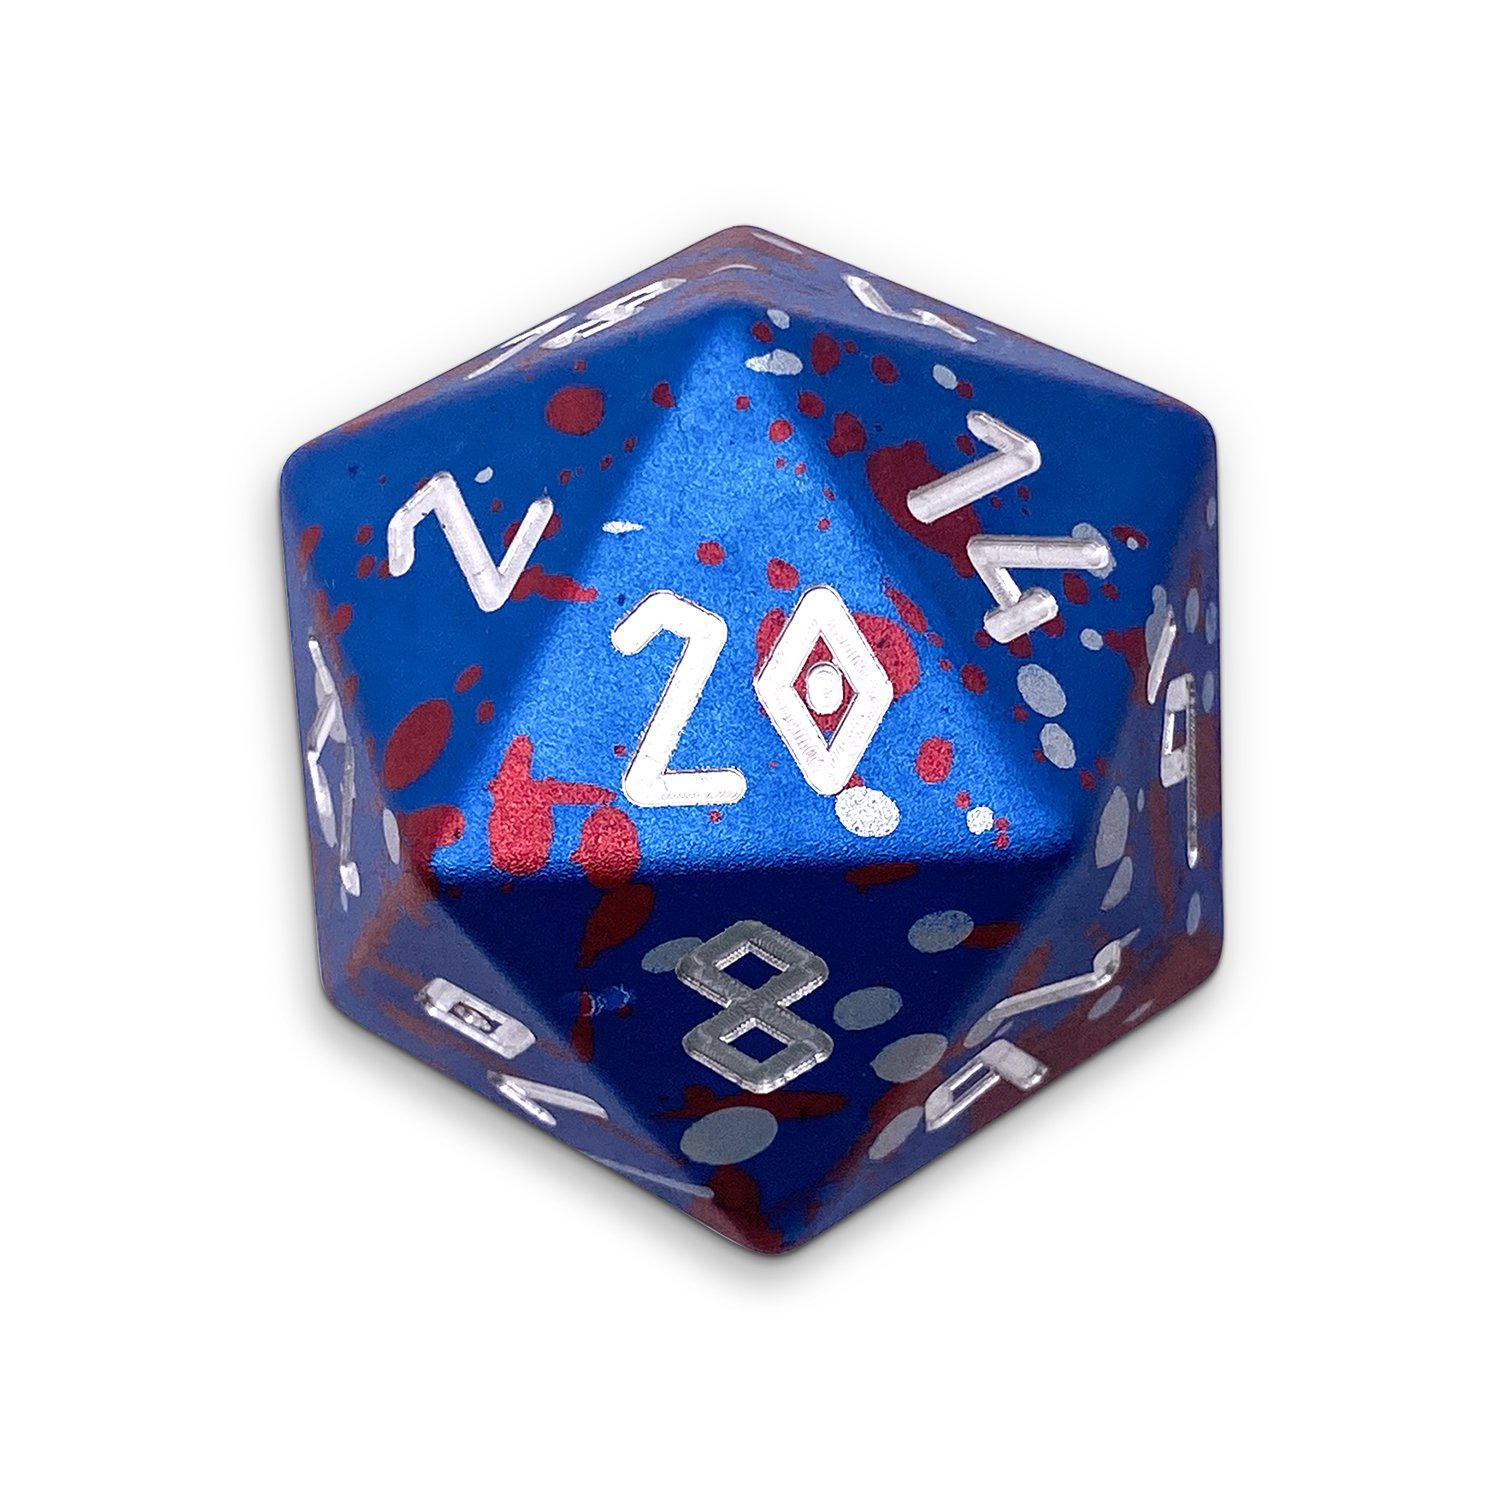 Merchants Favour - Wondrous Boulder® 55mm D20 6063 Aircraft Grade Aluminum Metal Die